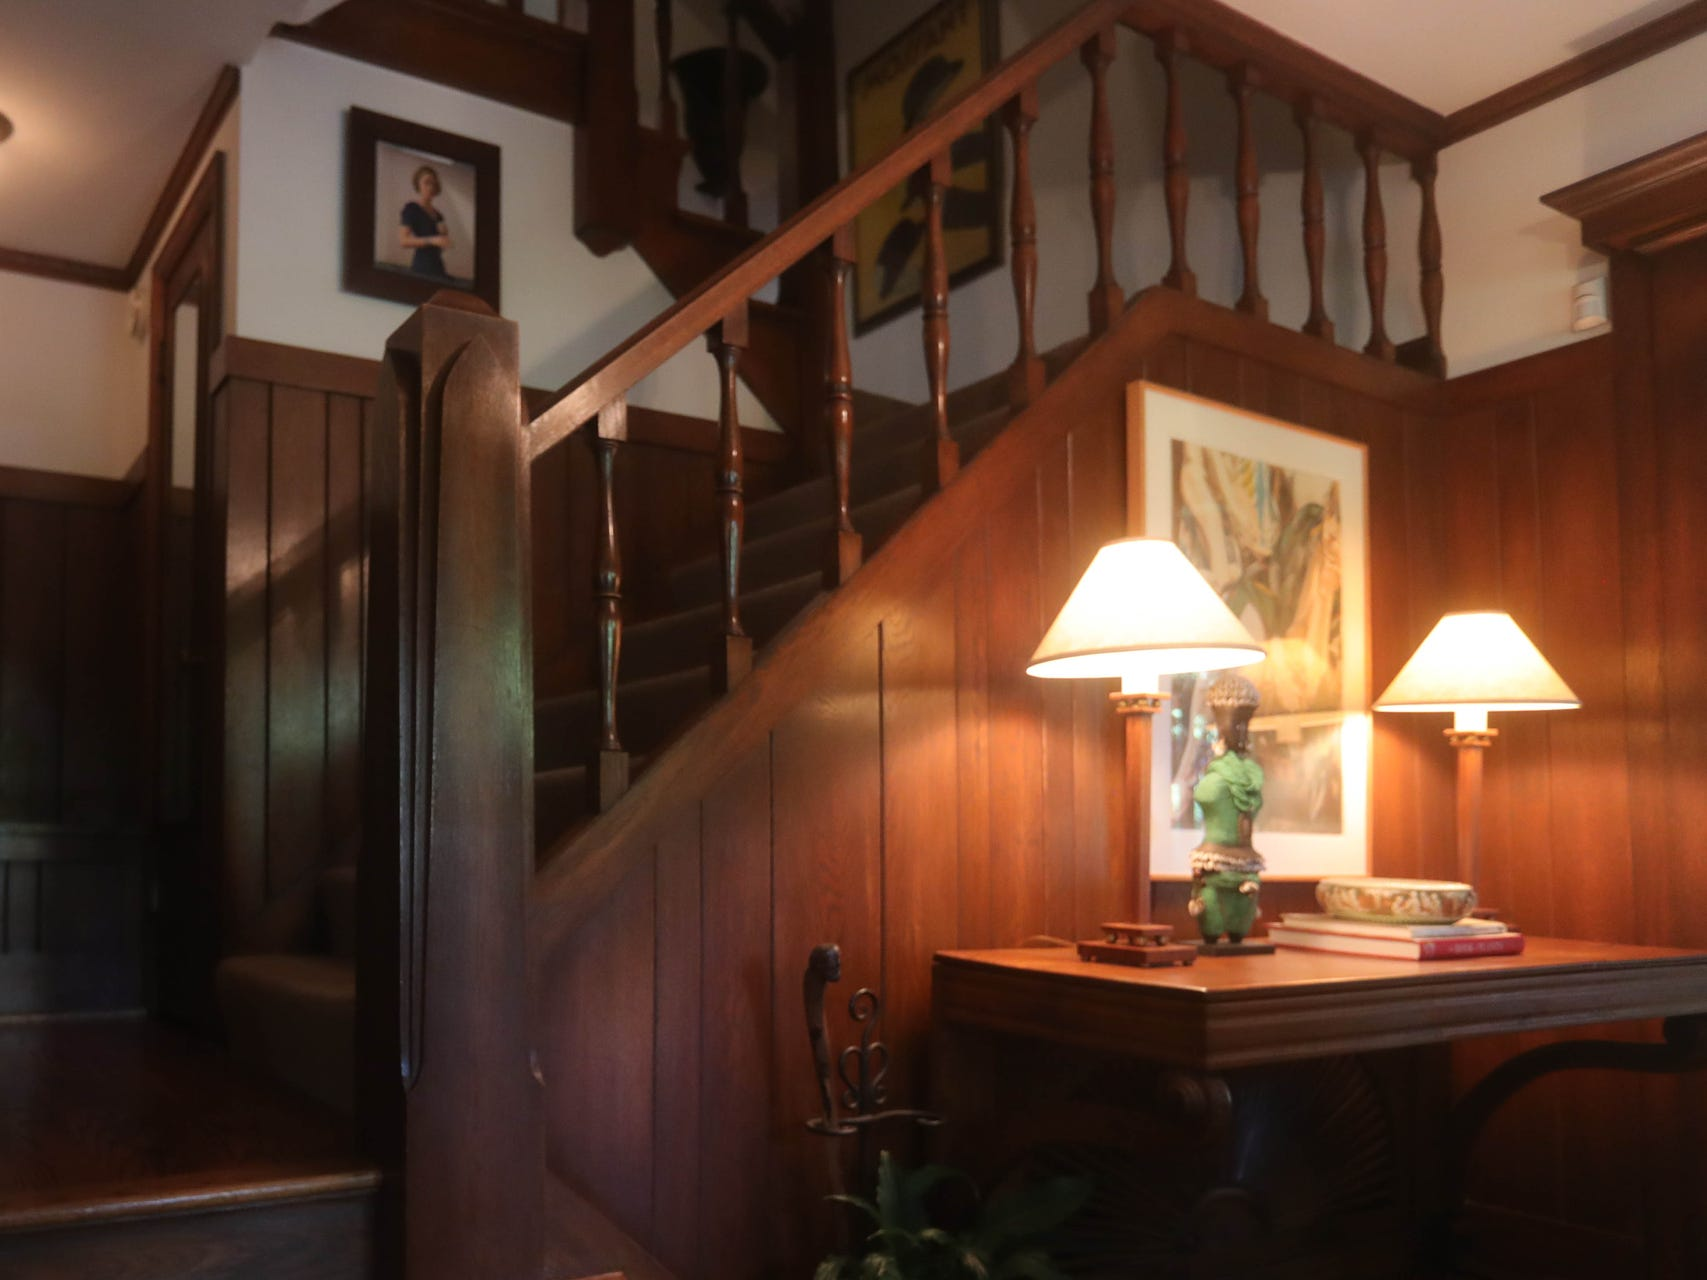 The entry foyer and staircase are paneled with oak.